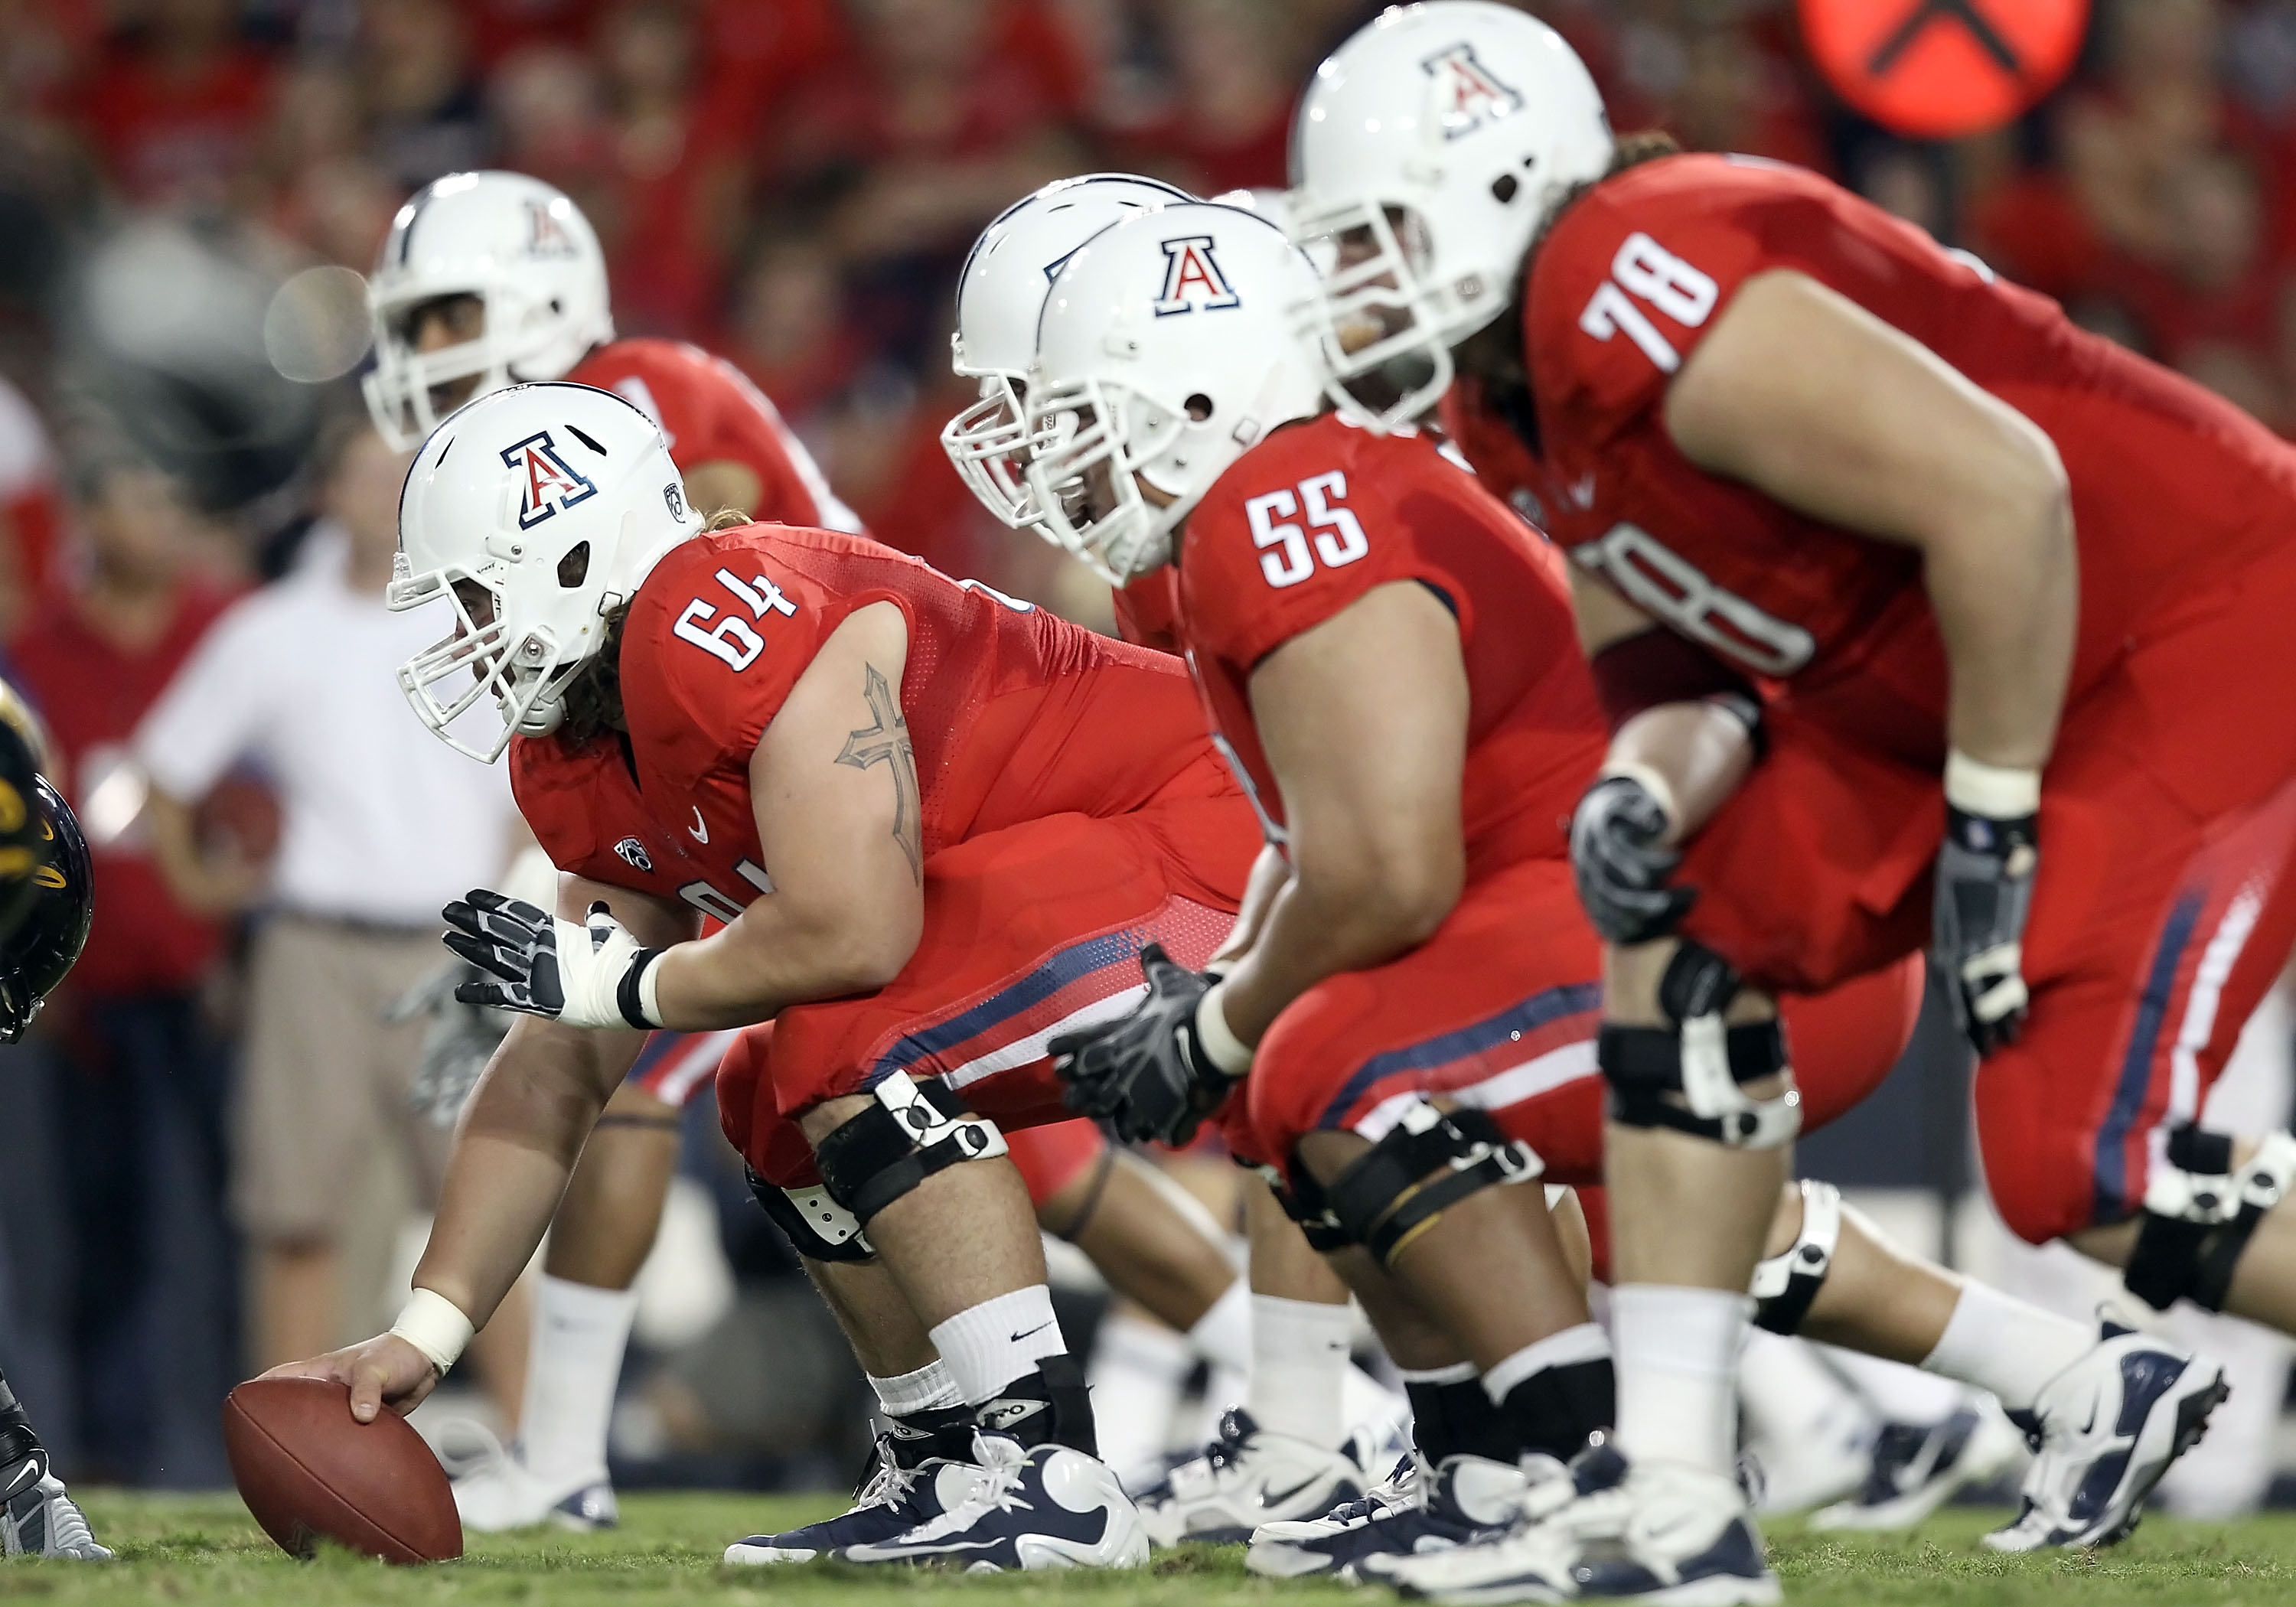 TUCSON, AZ - SEPTEMBER 25:  Center Colin Baxter #64 of the Arizona Wildcats prepares to snap the ball during the college football game against the California Golden Bears at Arizona Stadium on September 25, 2010 in Tucson, Arizona.   The Wildcats defeated